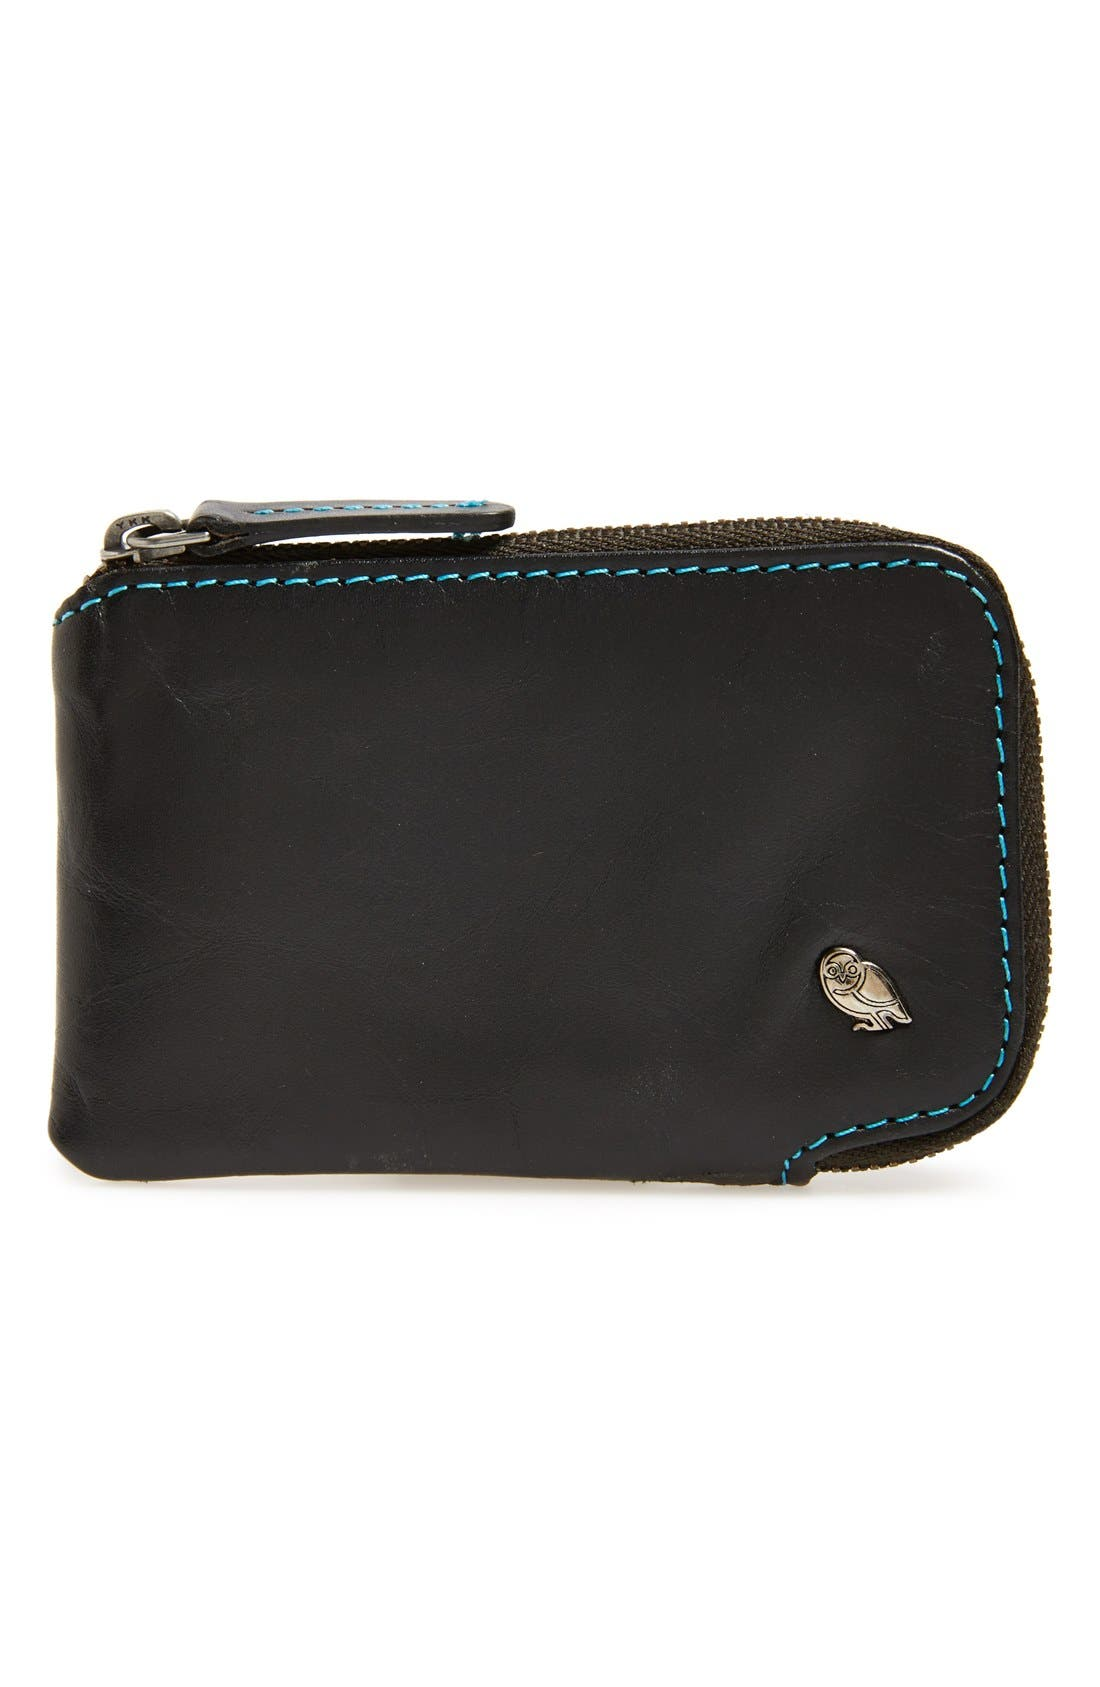 BELLROY 'Very Small' Wallet, Main, color, 001